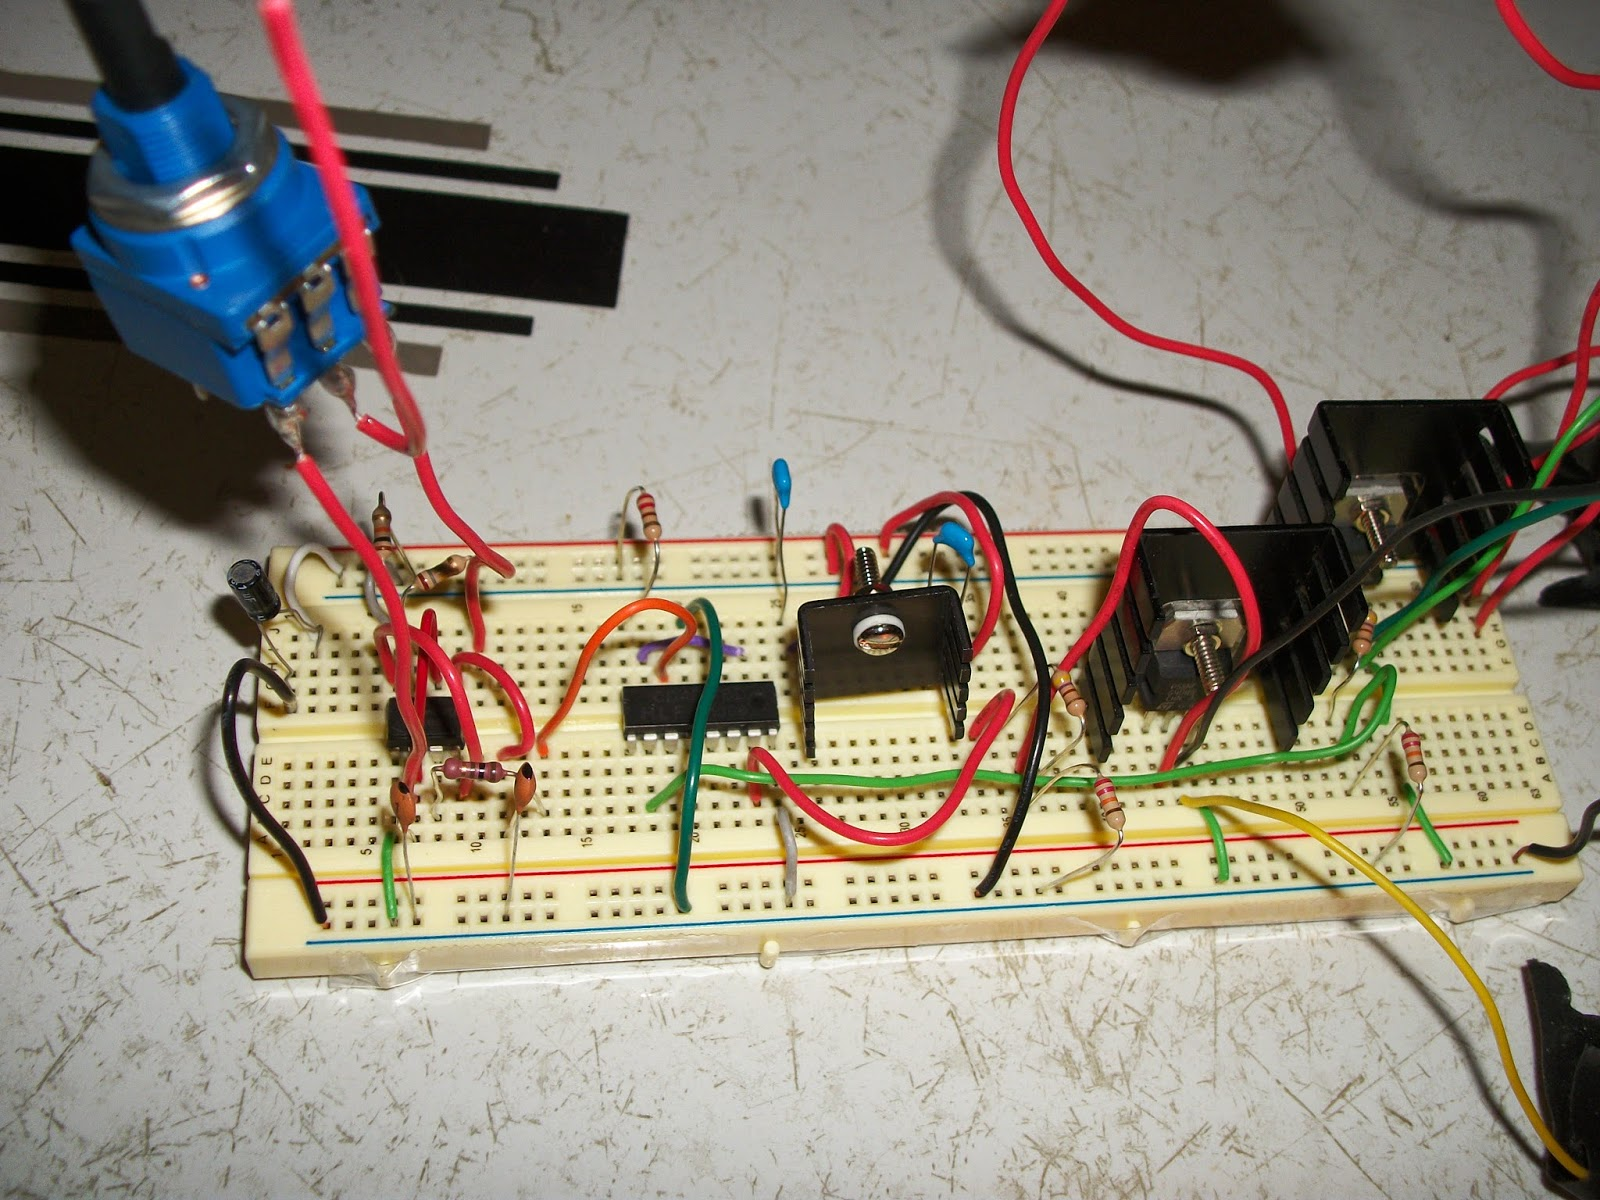 The Krell Lab Homemade Modified Sine Wave Power Inverter350 500w Inverter Circuit Diagram On A Breadboard02